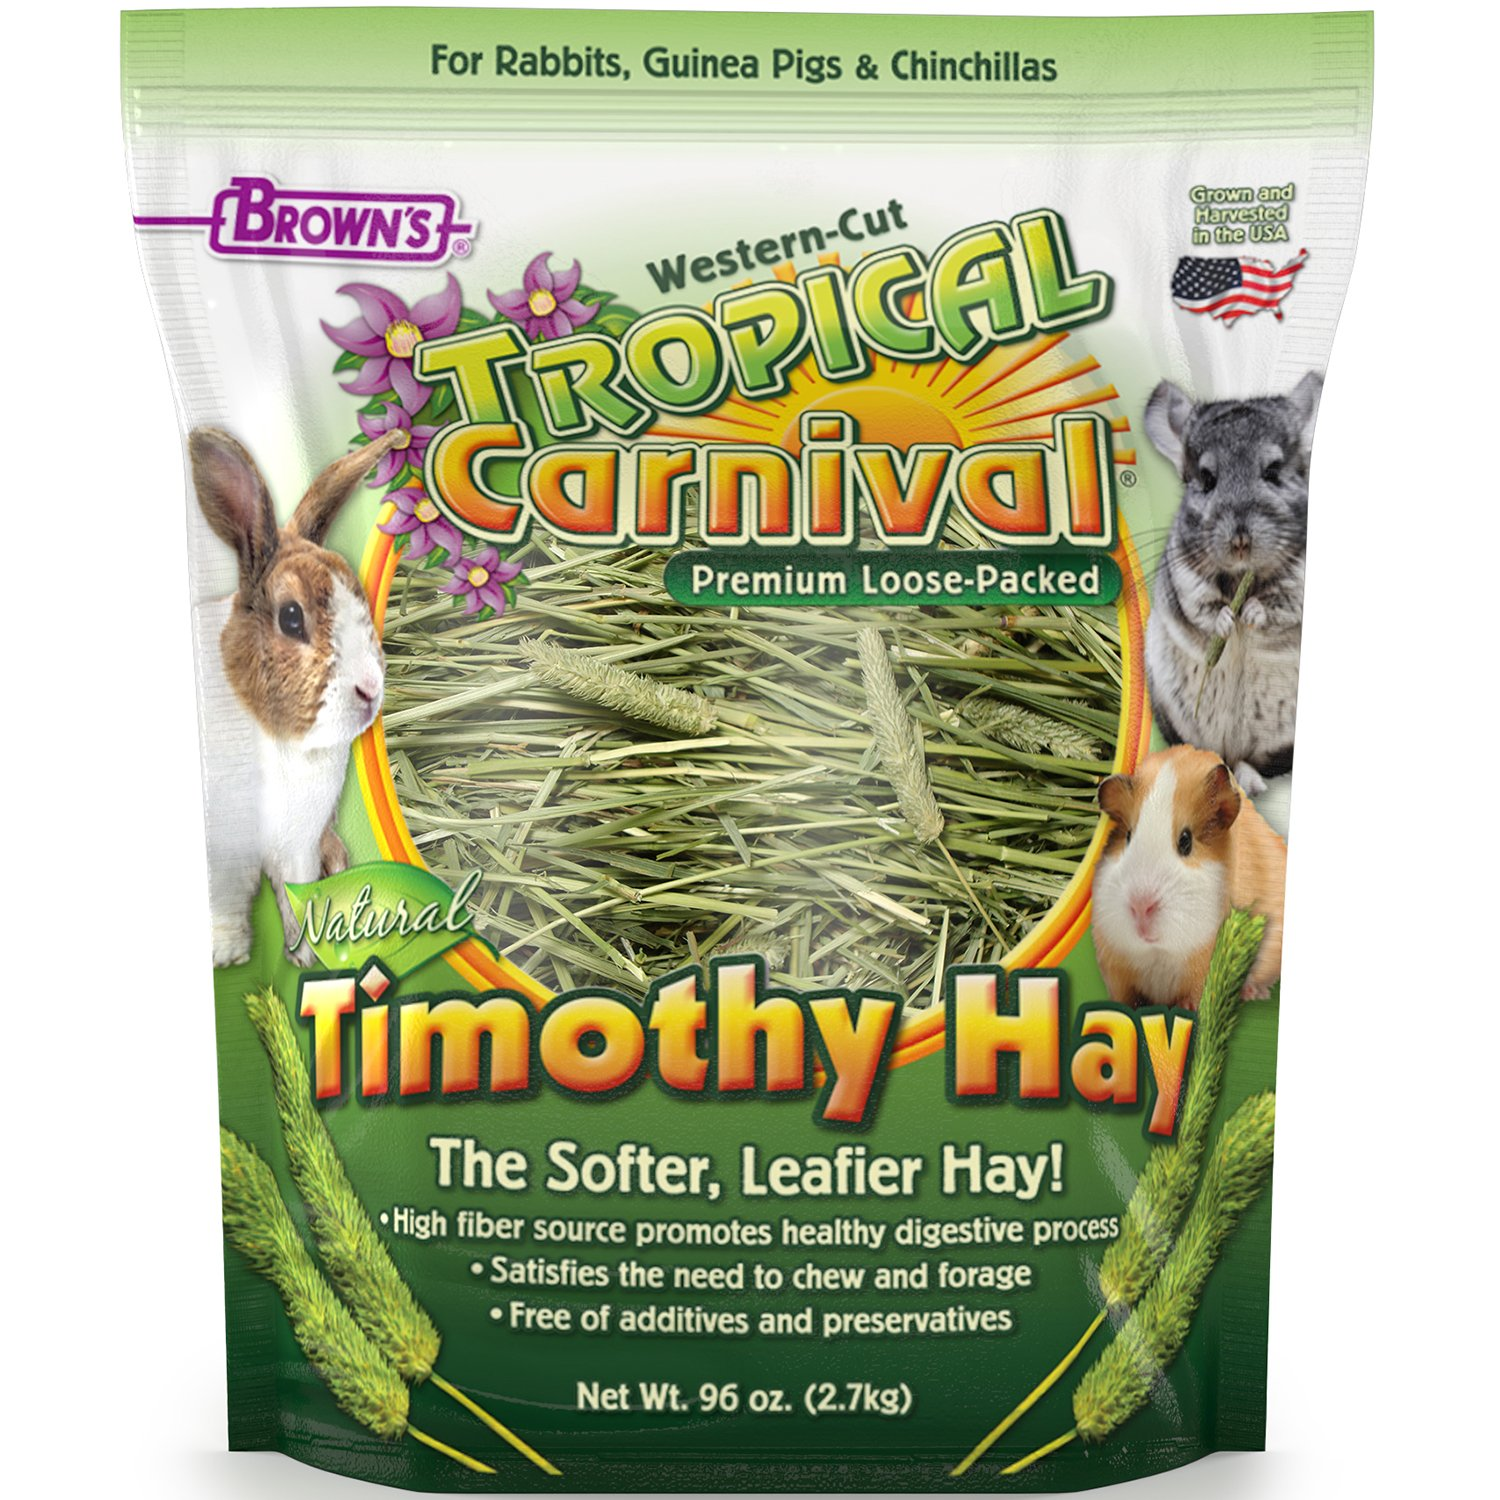 F.M. Brown's Tropical Carnival Natural Timothy Hay for Guinea Pigs, Rabbits, and Other Small Animals - High Fiber for Healthy Digestion by Tropical Carnival